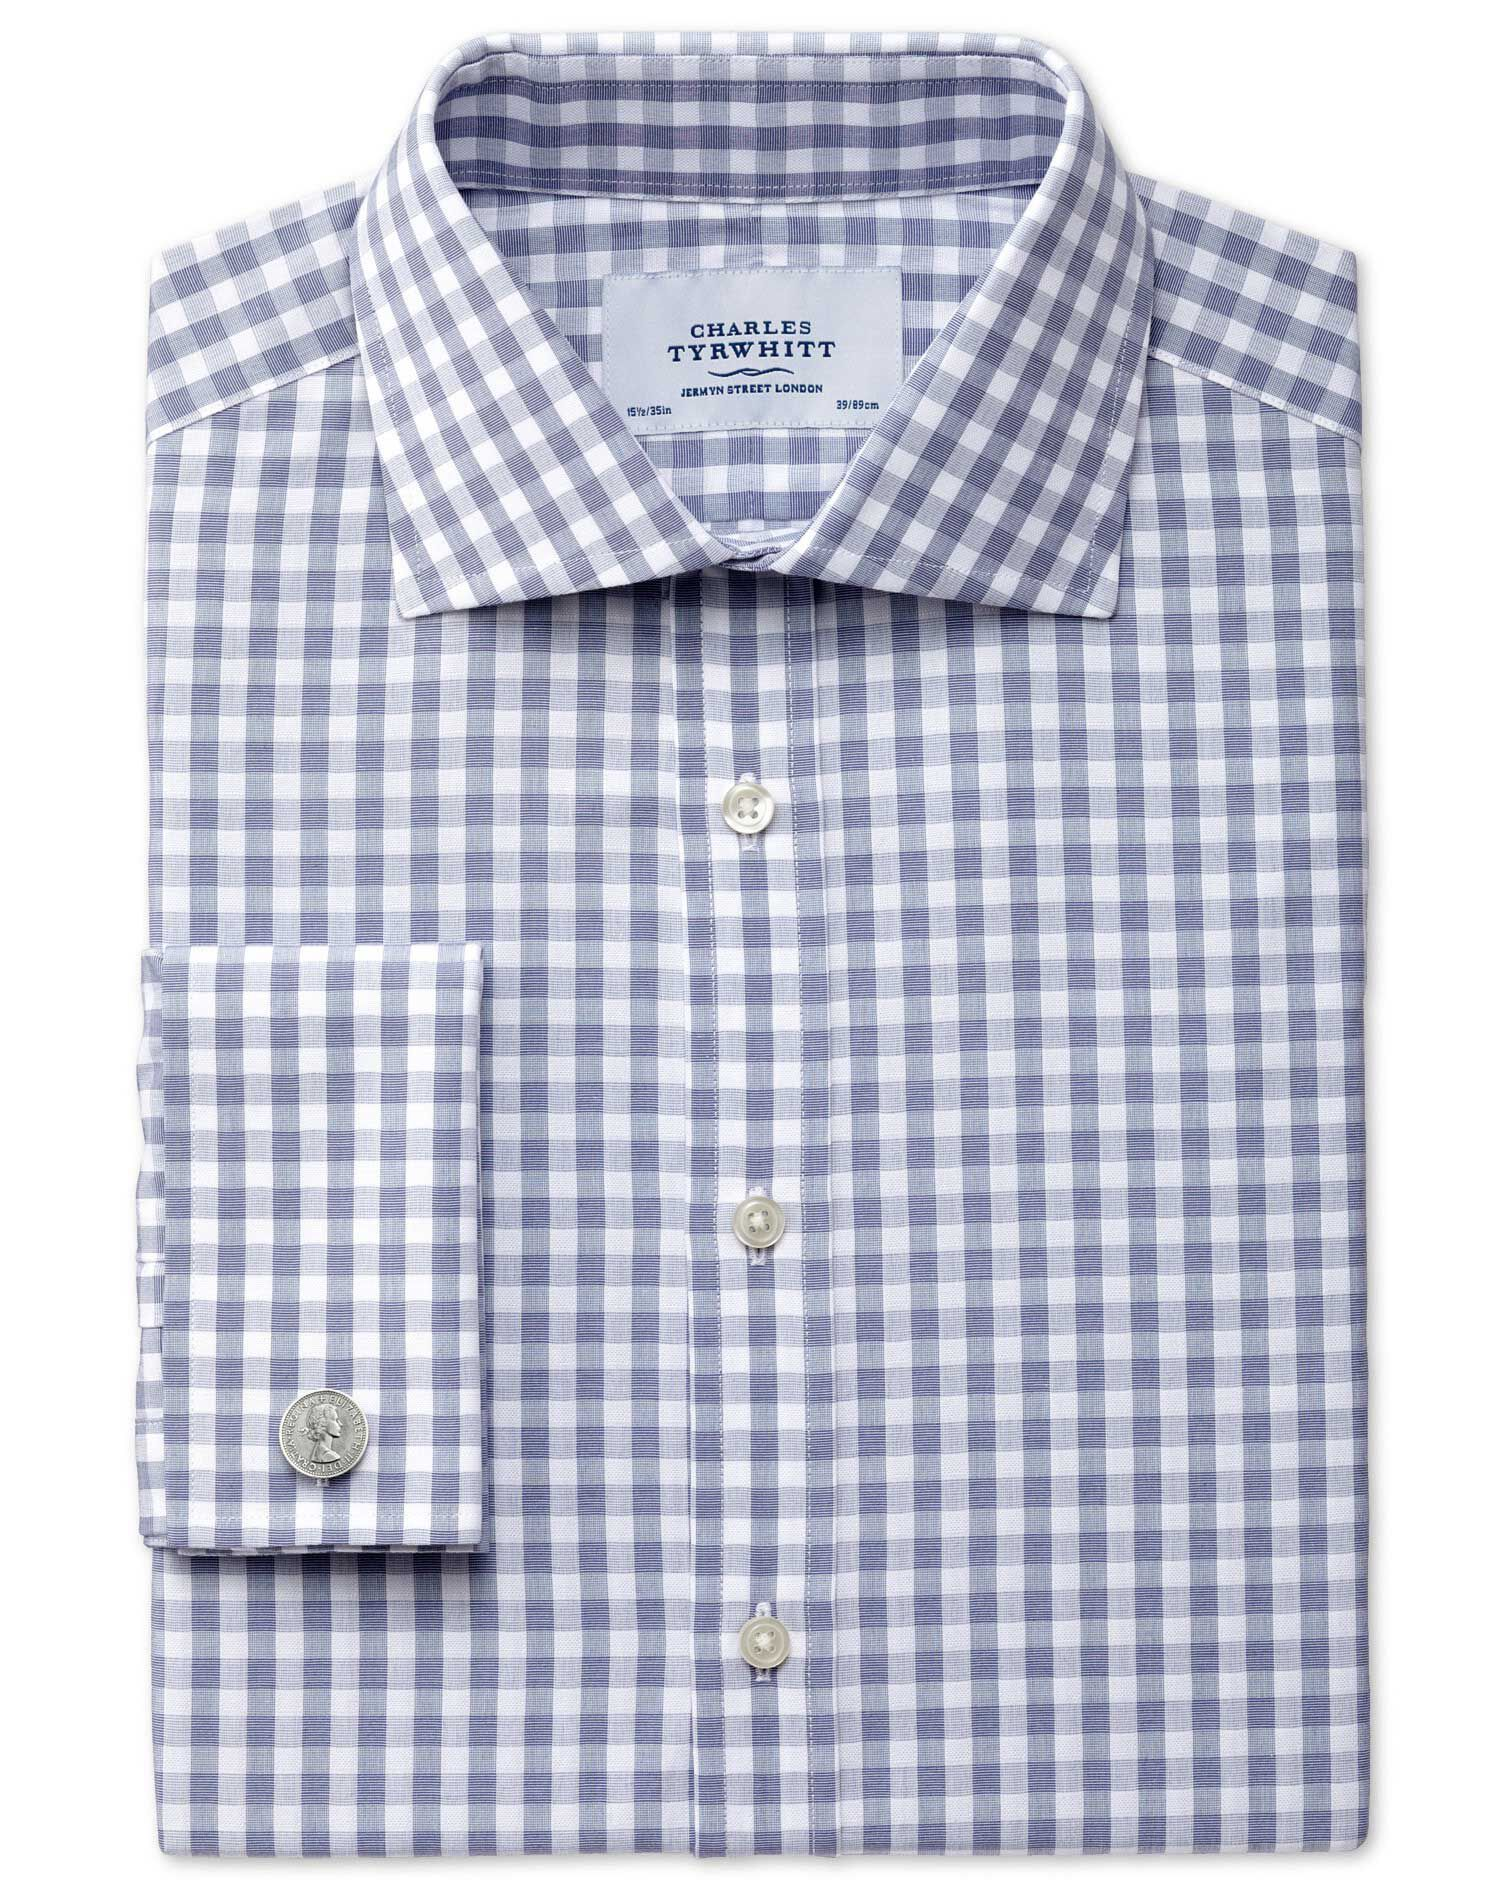 Classic Fit Semi-Cutaway Collar Textured Gingham Navy Cotton Formal Shirt Double Cuff Size 15/33 by